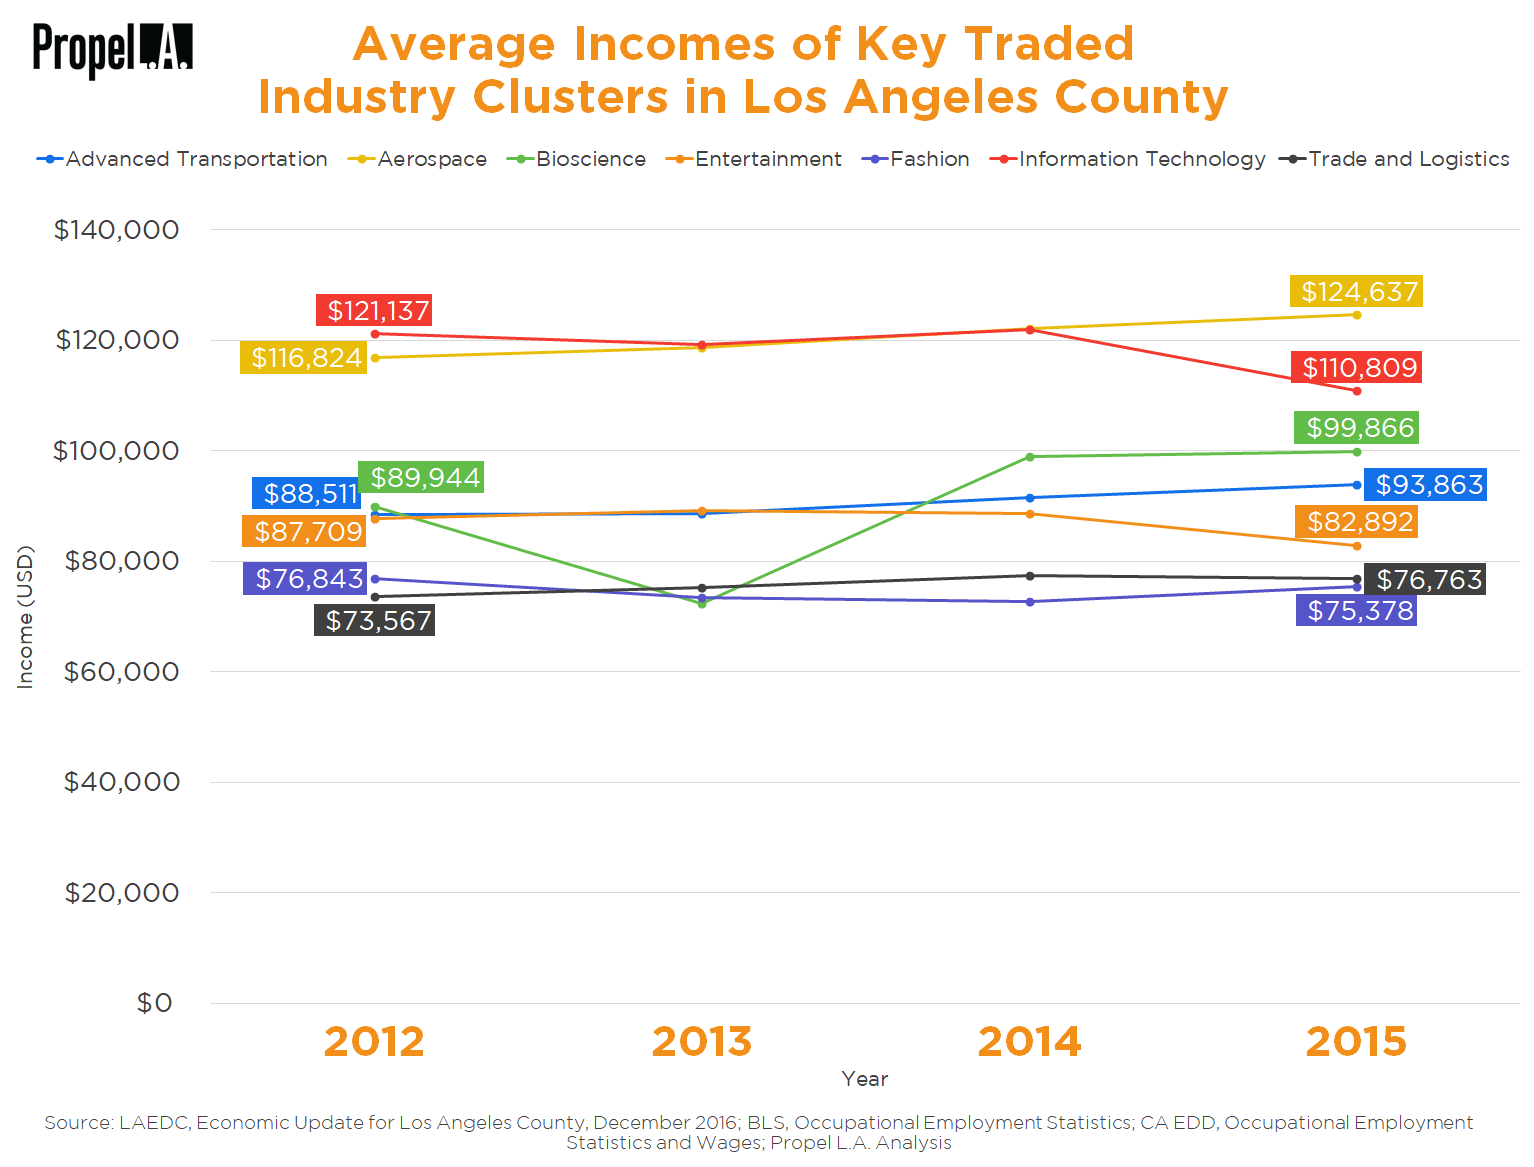 Average Incomes of Key Traded Industry Clusters in Los Angeles County